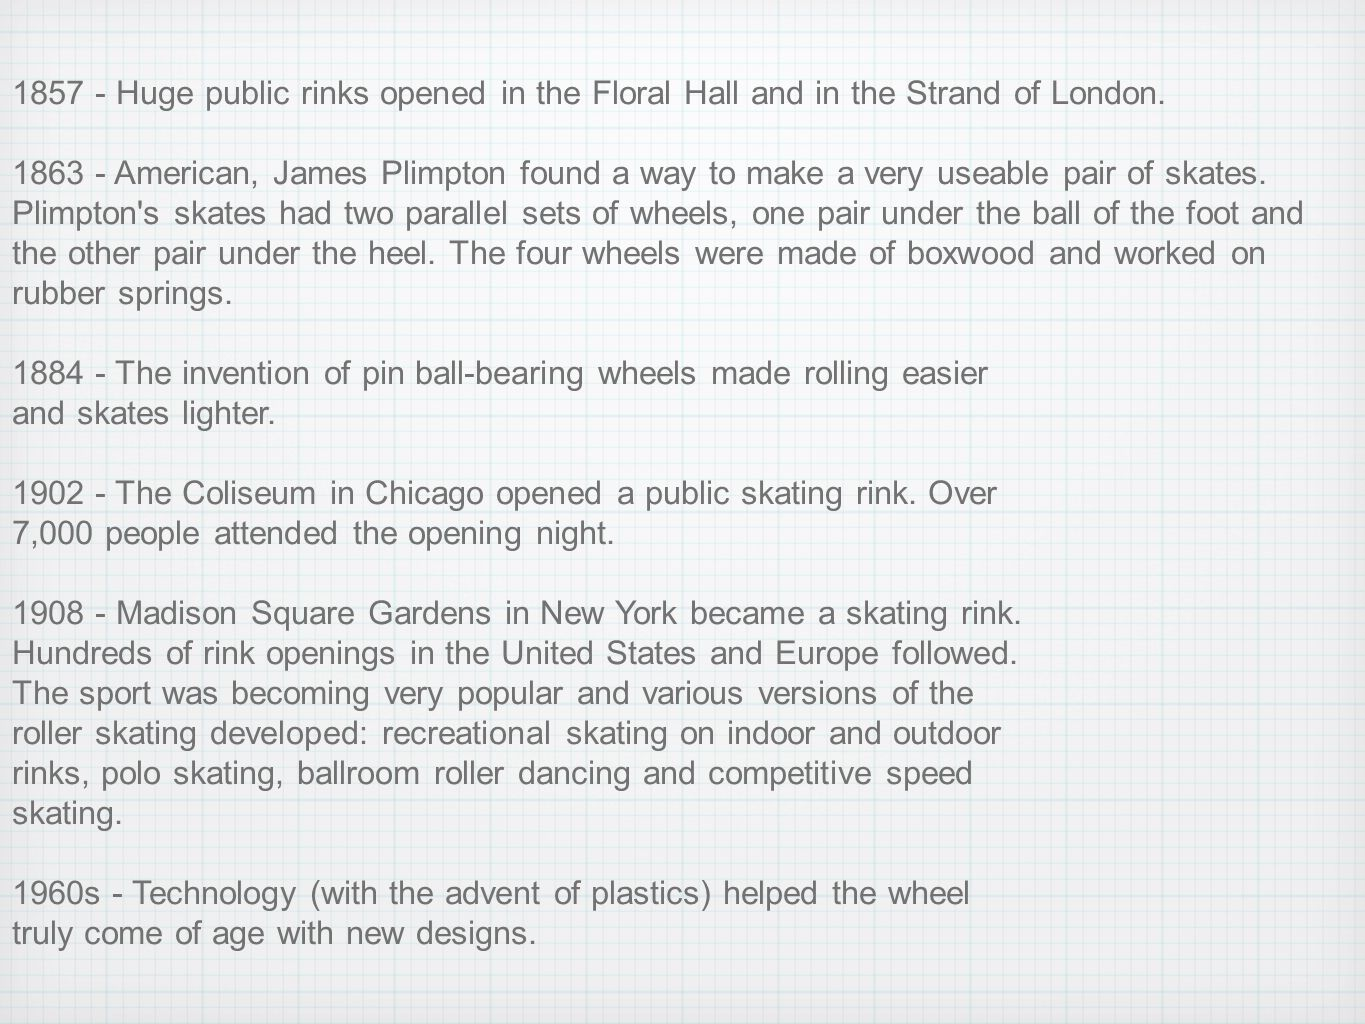 1857 - Huge public rinks opened in the Floral Hall and in the Strand of London.